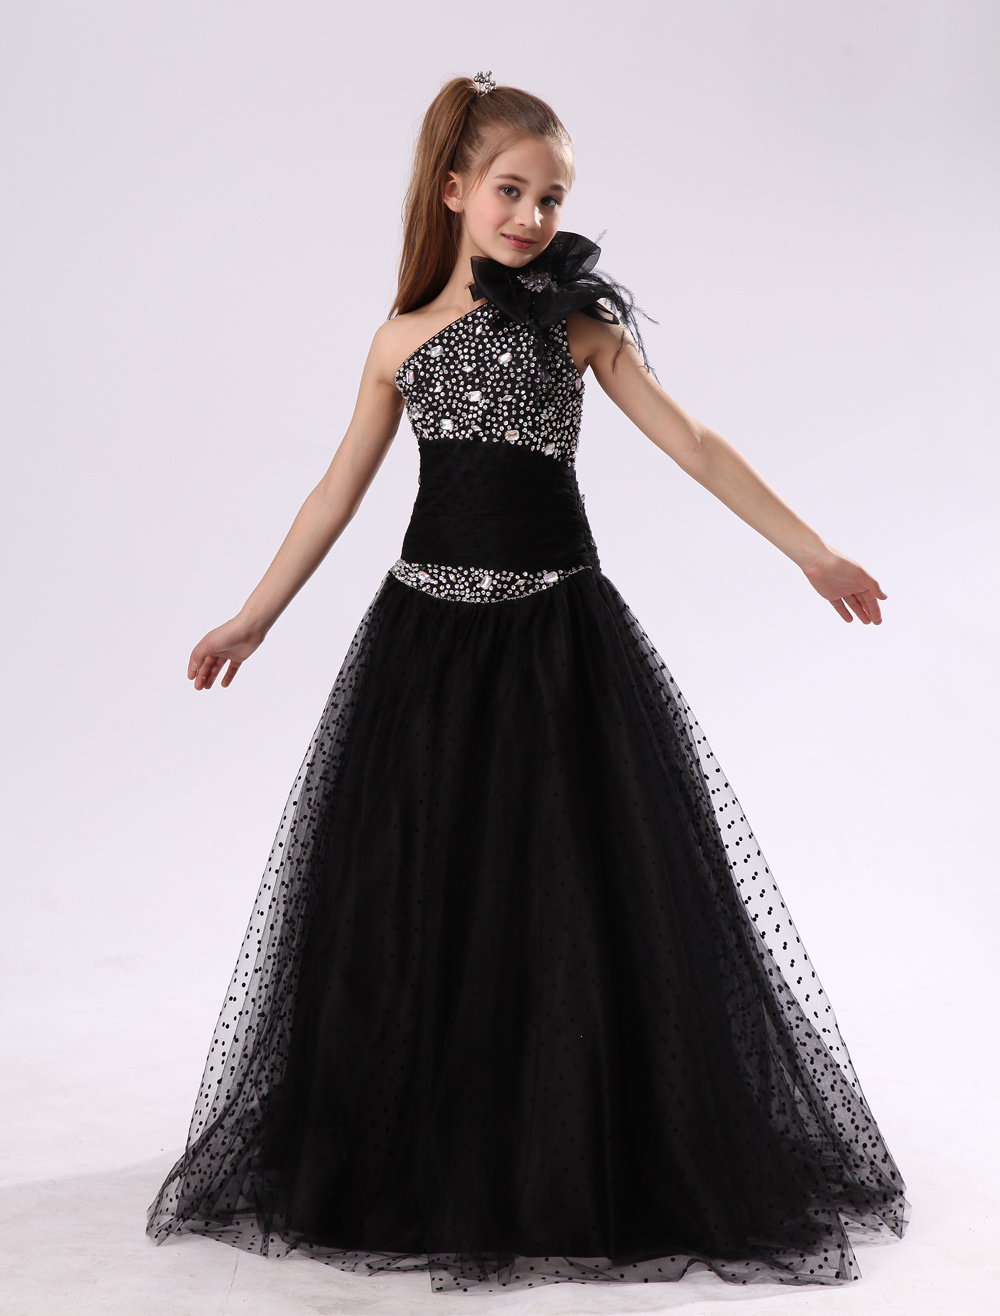 Flower Girl Dresses Black One Shoulder Junior Bridesmaid Rhinestone Beaded Kids Pageant Dress